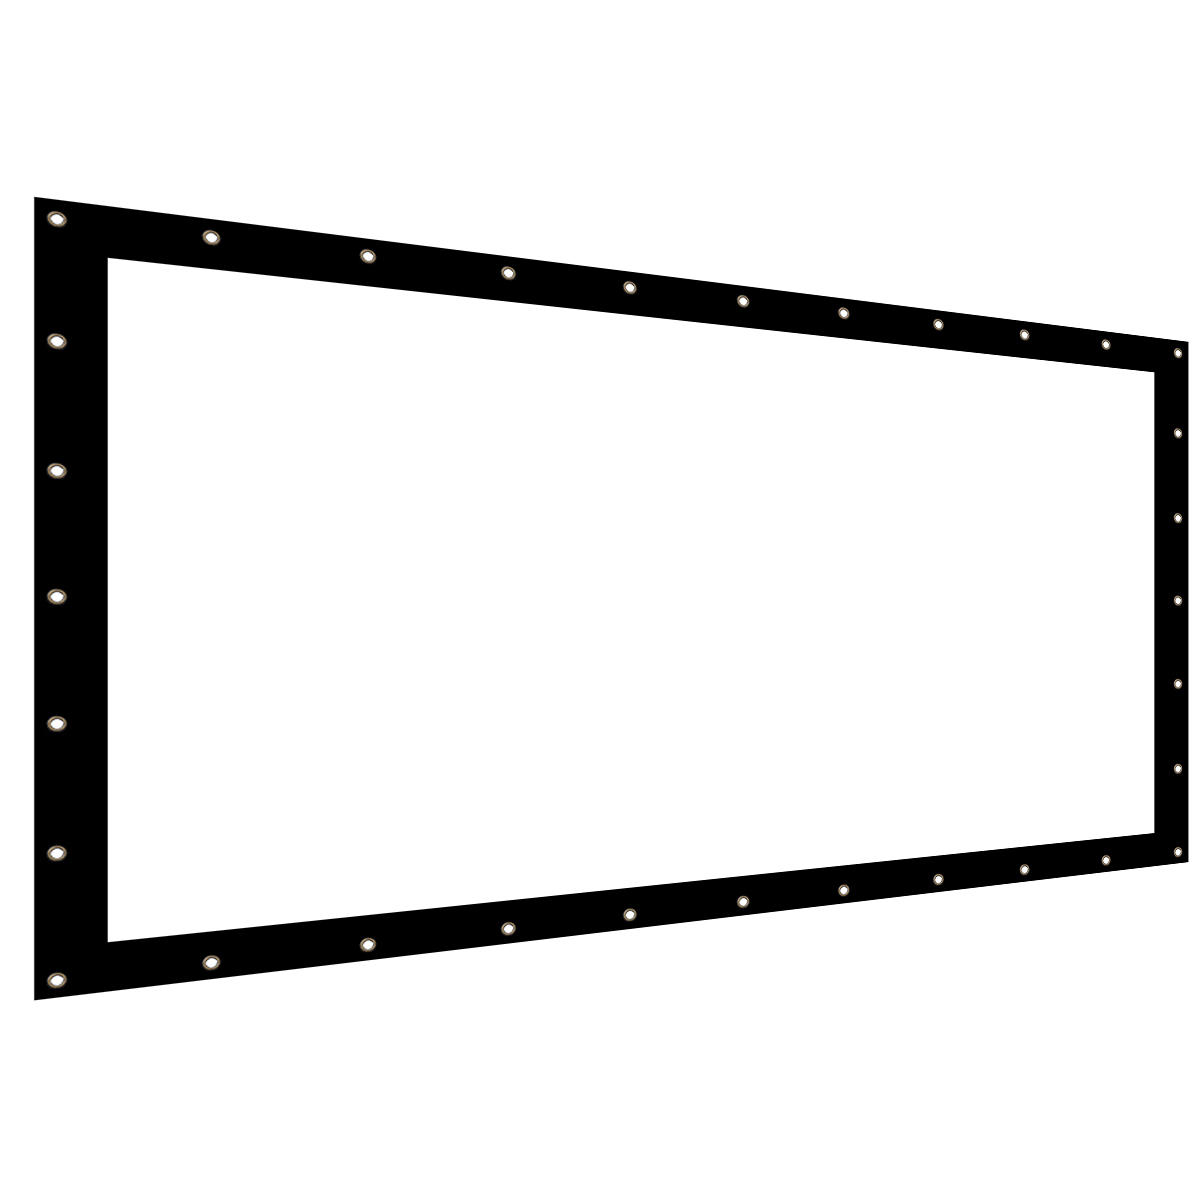 300 Inch 16 9 Projector Display Screen Football Match Home